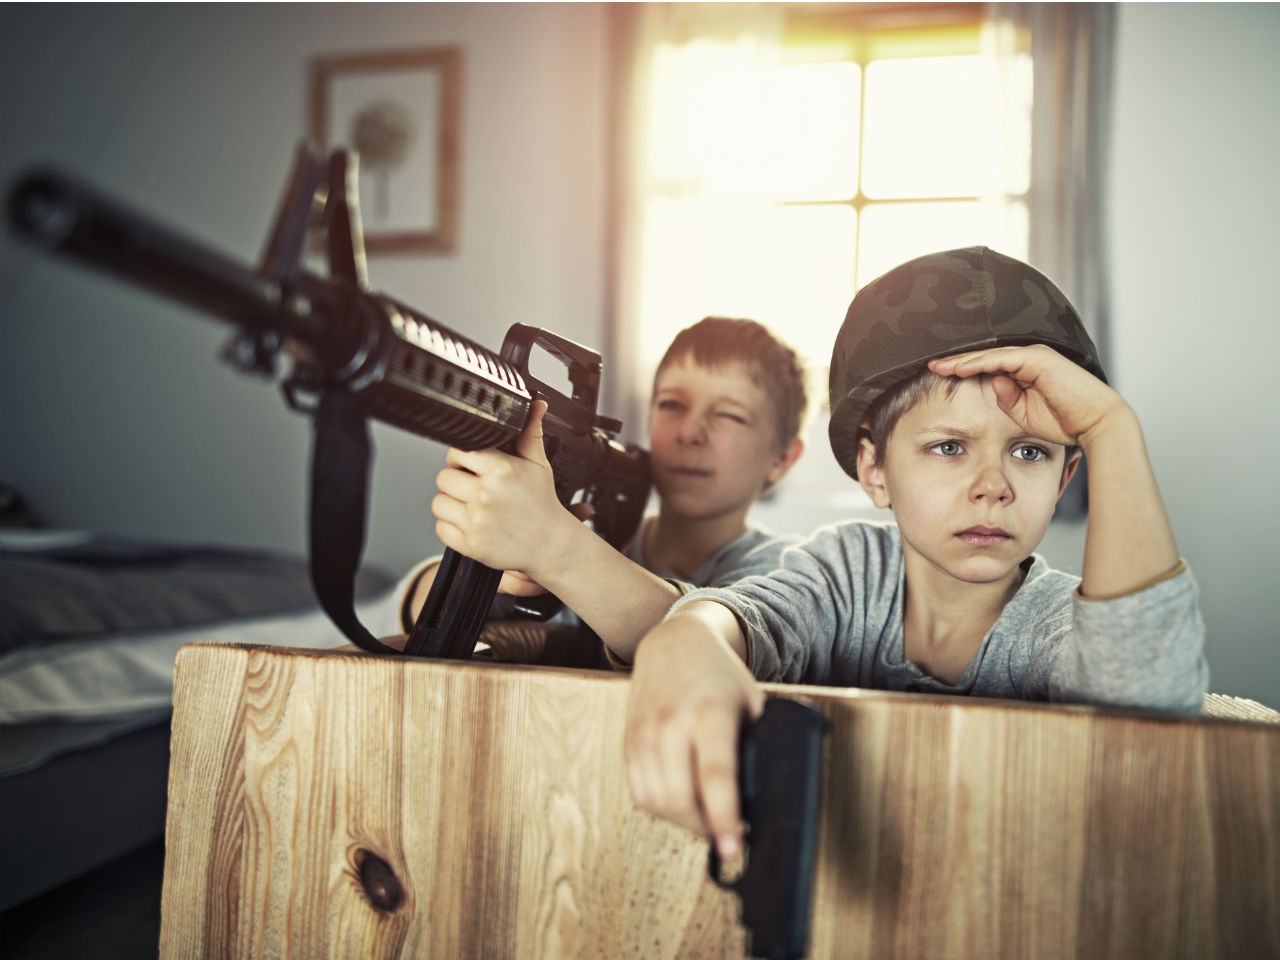 kids playing with real guns